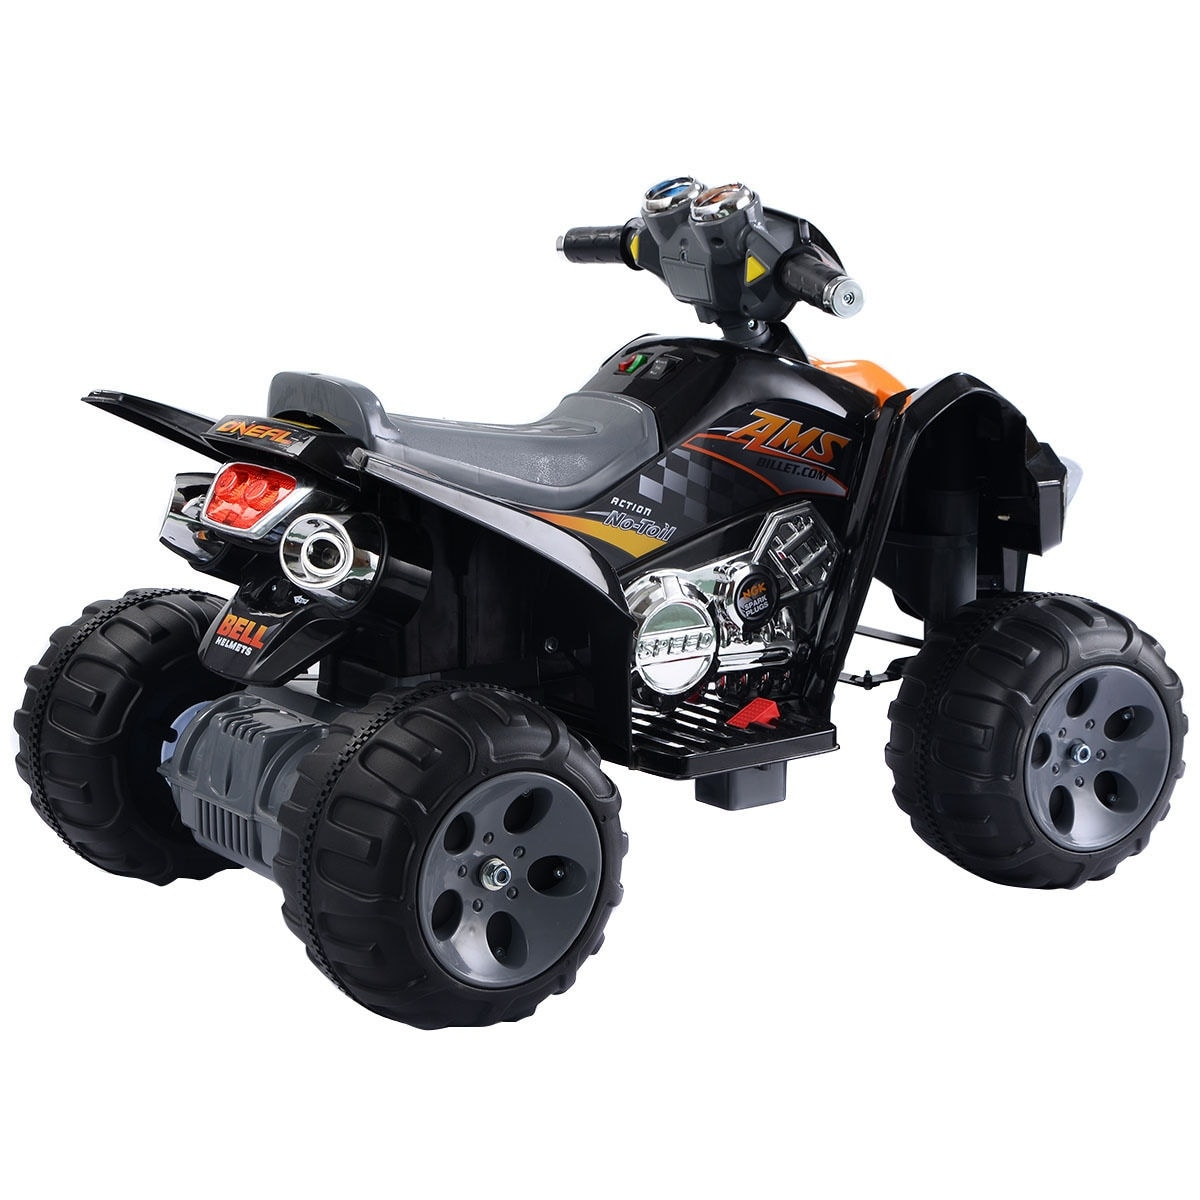 12v Led Quad Costway Kids Ride On Atv Quad 4 Wheeler Electric Toy Car 12v Battery Power Led Lights Black